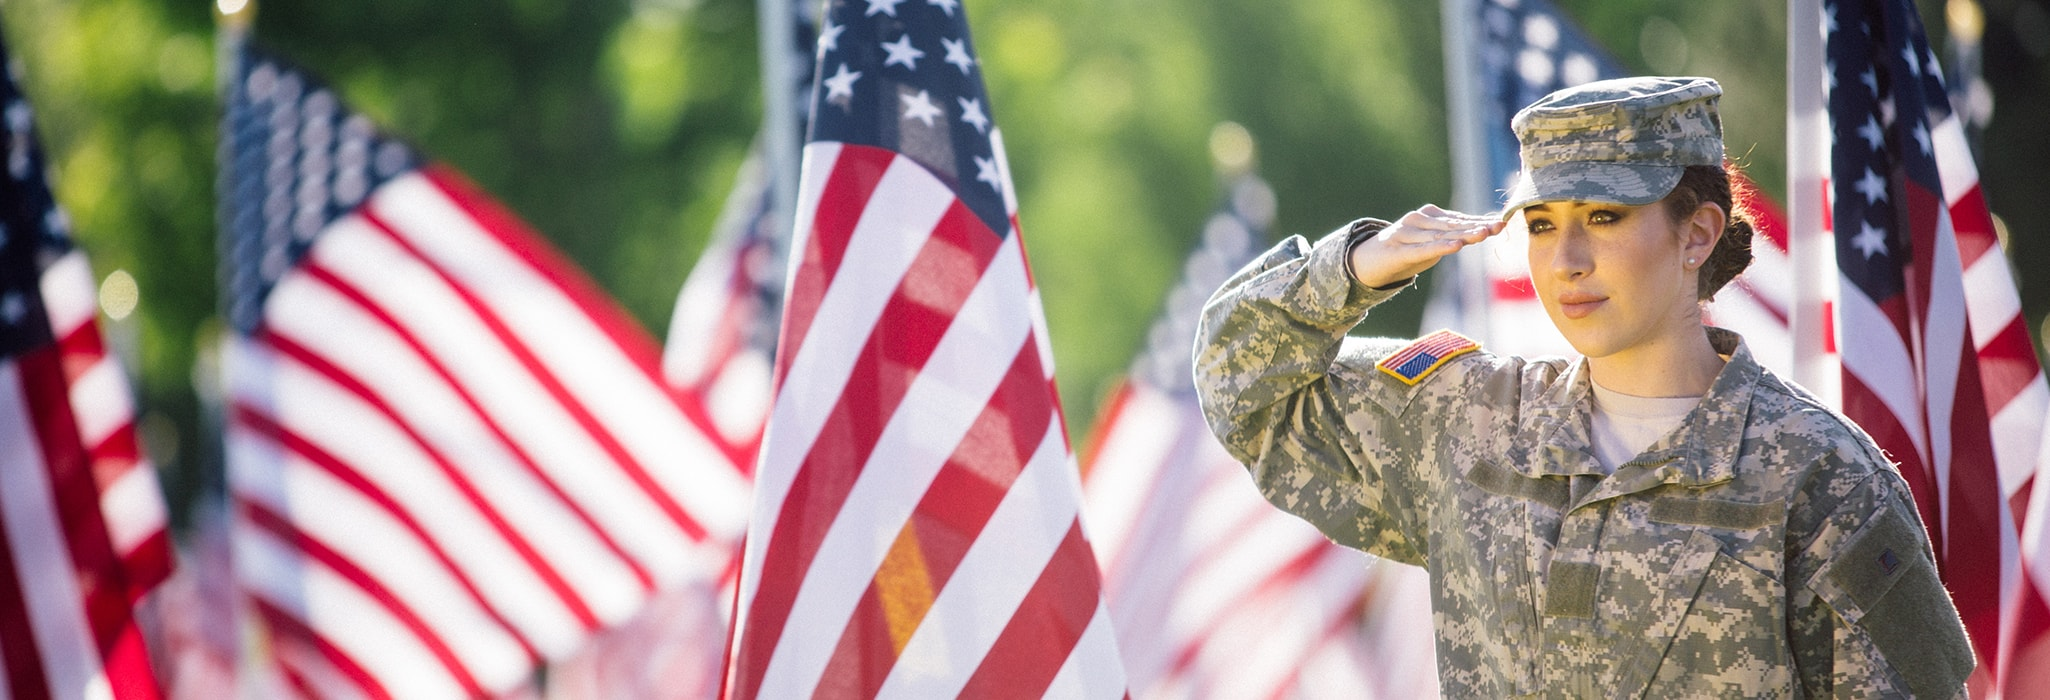 American Soldier saluting in front of flags